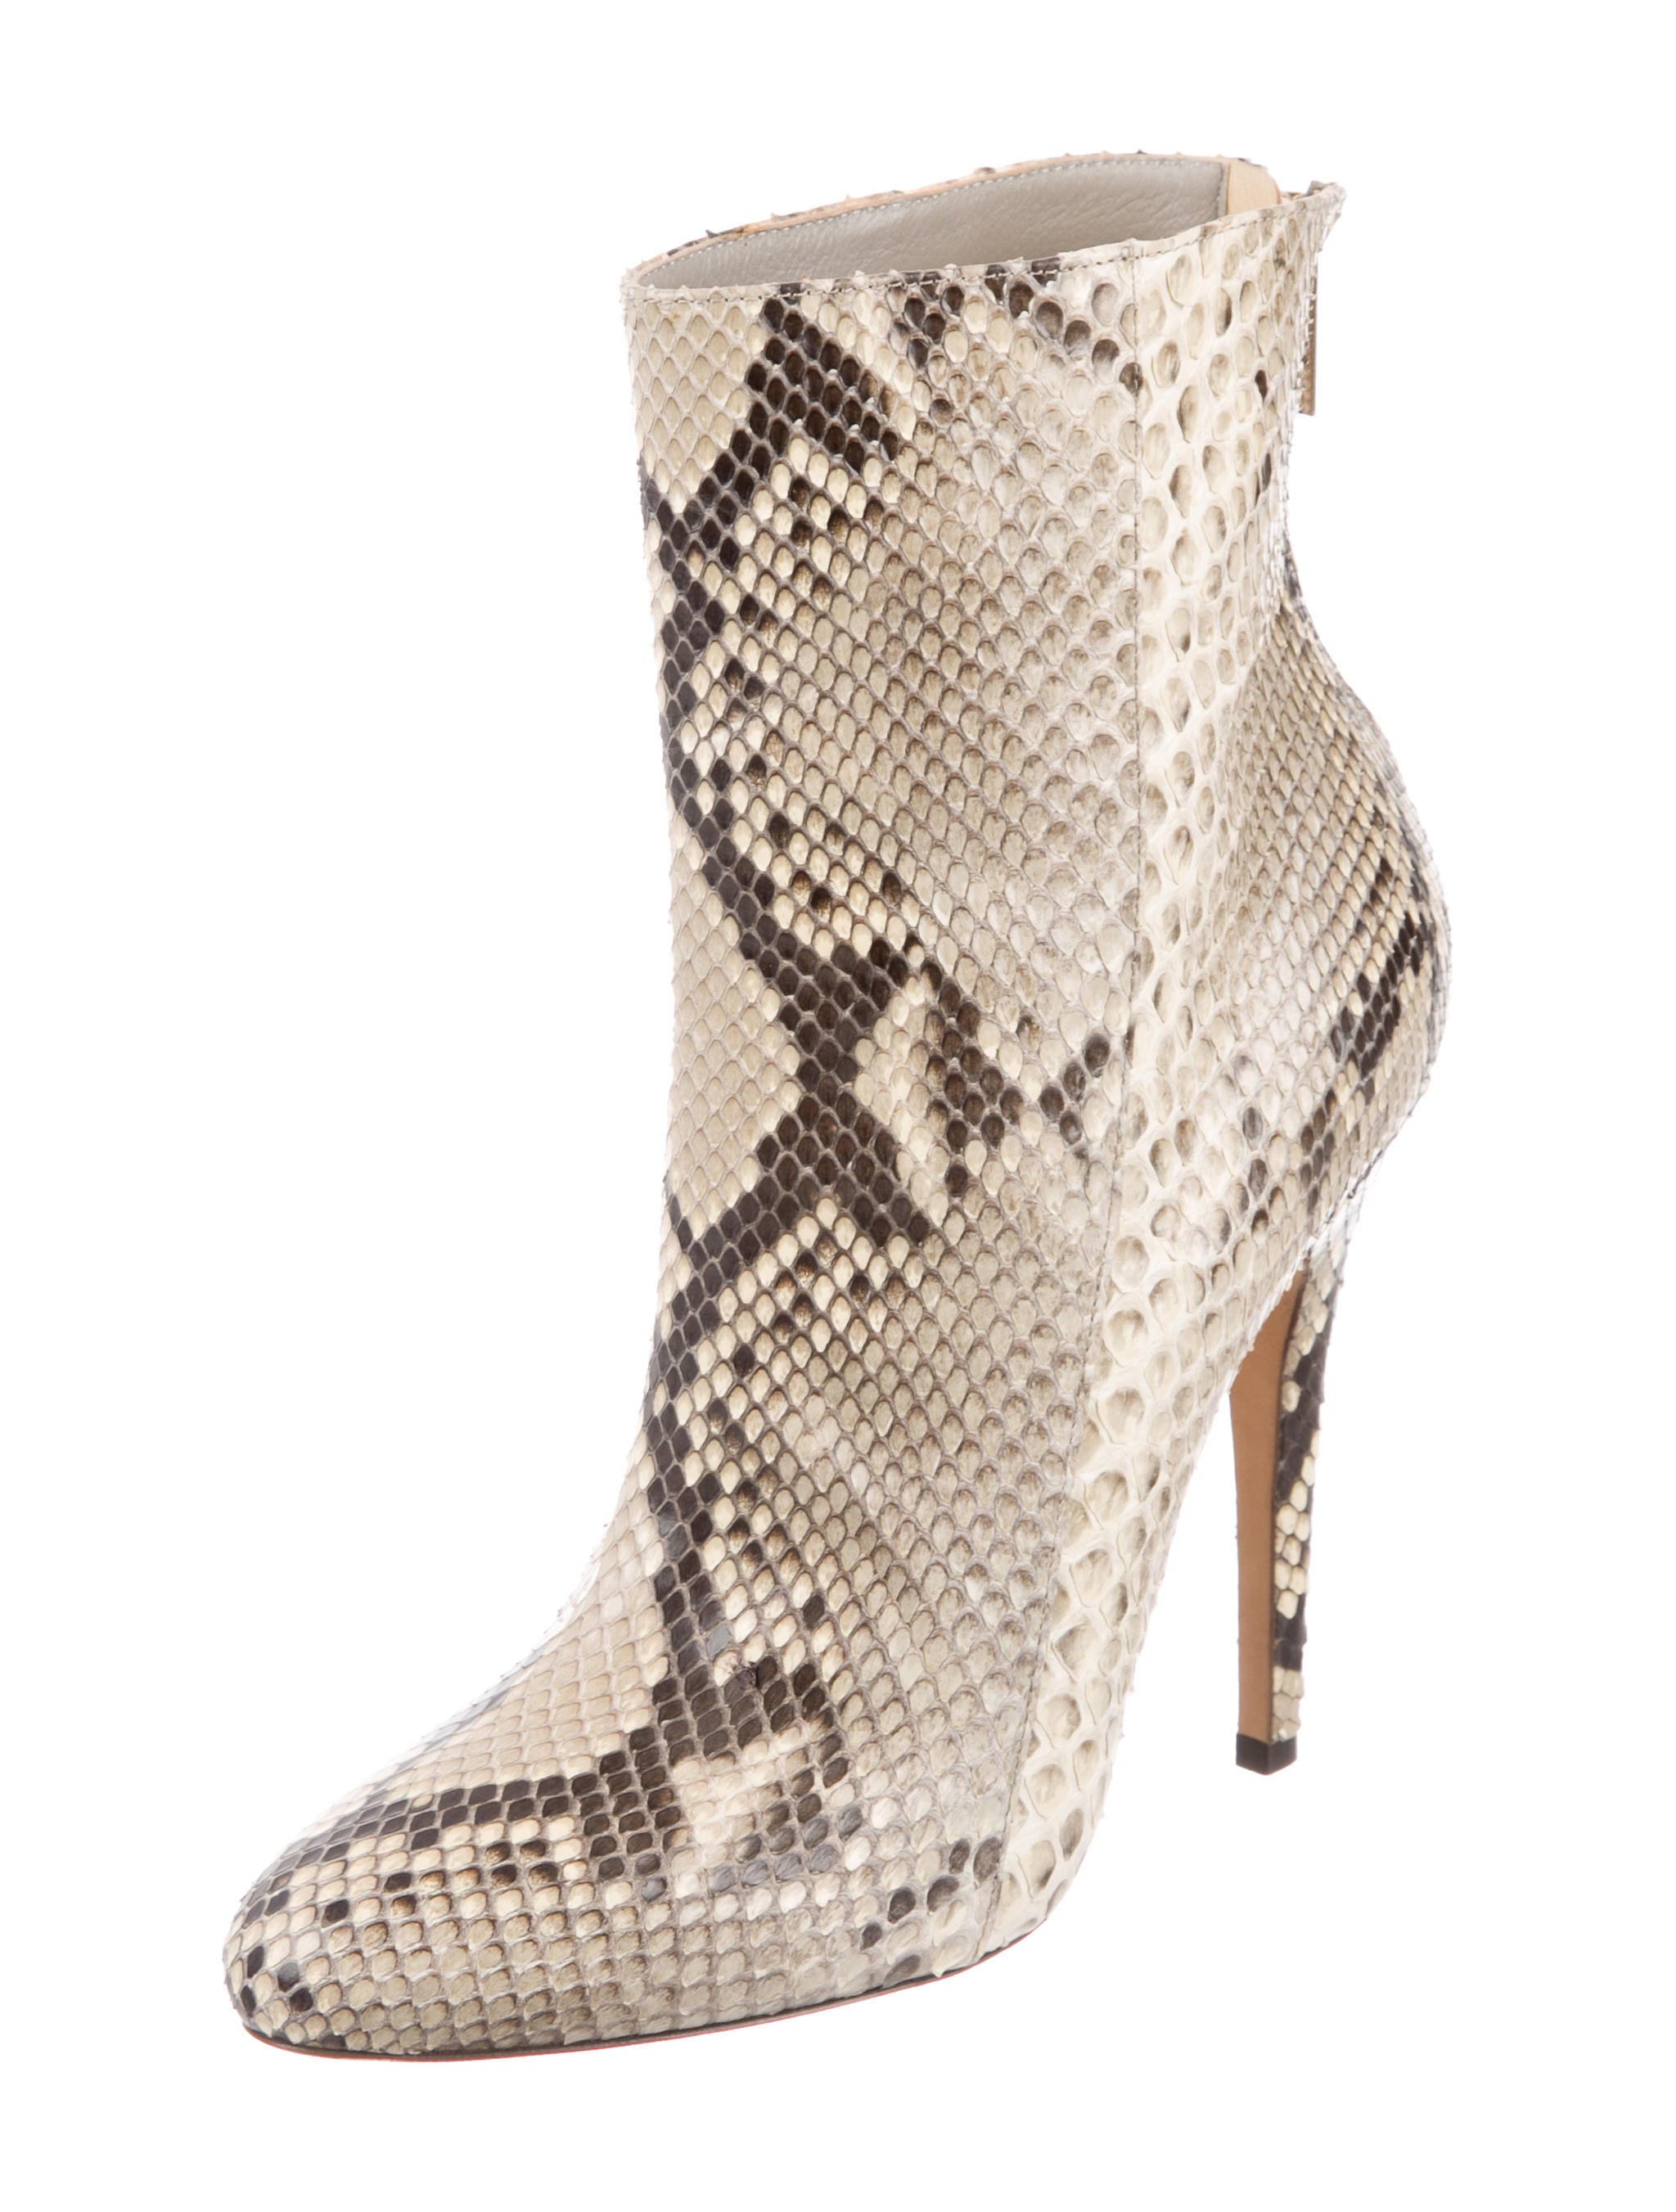 clearance cheap real outlet purchase Jimmy Choo 122 Brinley Python Ankle Boots best cheap online HGbLI2